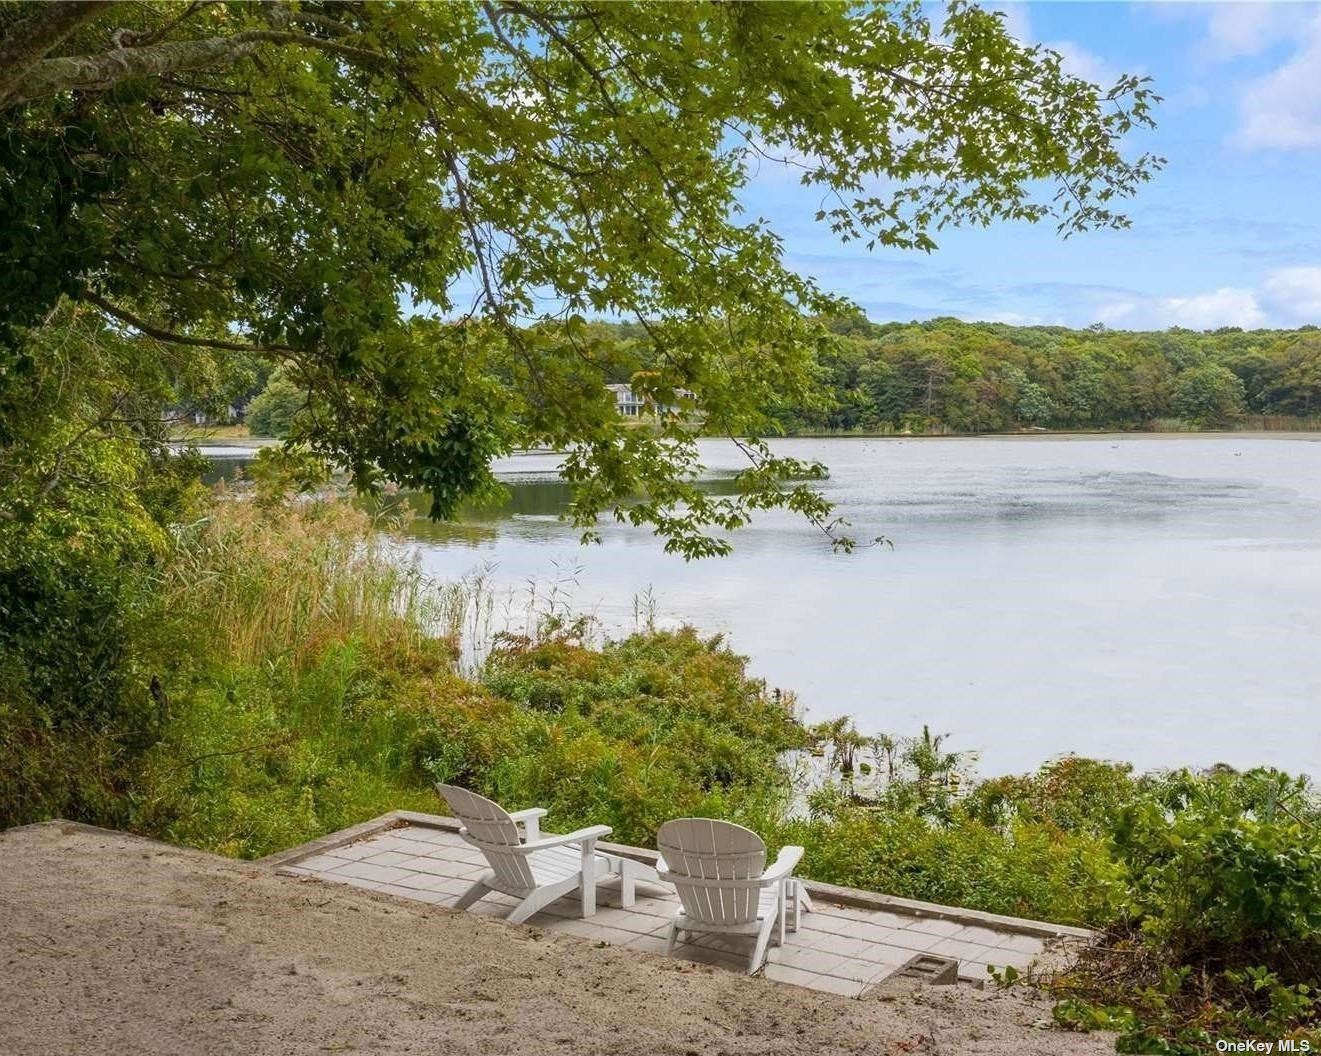 """New to the Market!!! Quintessential North Fork Waterfront Beach Cottage! Wiggle your toes in the sand from your own back yard. Enjoy the peacefulness of Great Pond. And then put on your flip flops, grab a towel, and be at the beach- just a short walk down the road.  The home is move-in, completely updated and waiting for you.  Open plan with beautiful kitchen, living and dining, two bedrooms, full bath, half bath and outdoor shower. Light and bright, everything is pristine. Property sold """"as is"""". Own this get-away cottage and enjoy all four seasons- it's time!"""